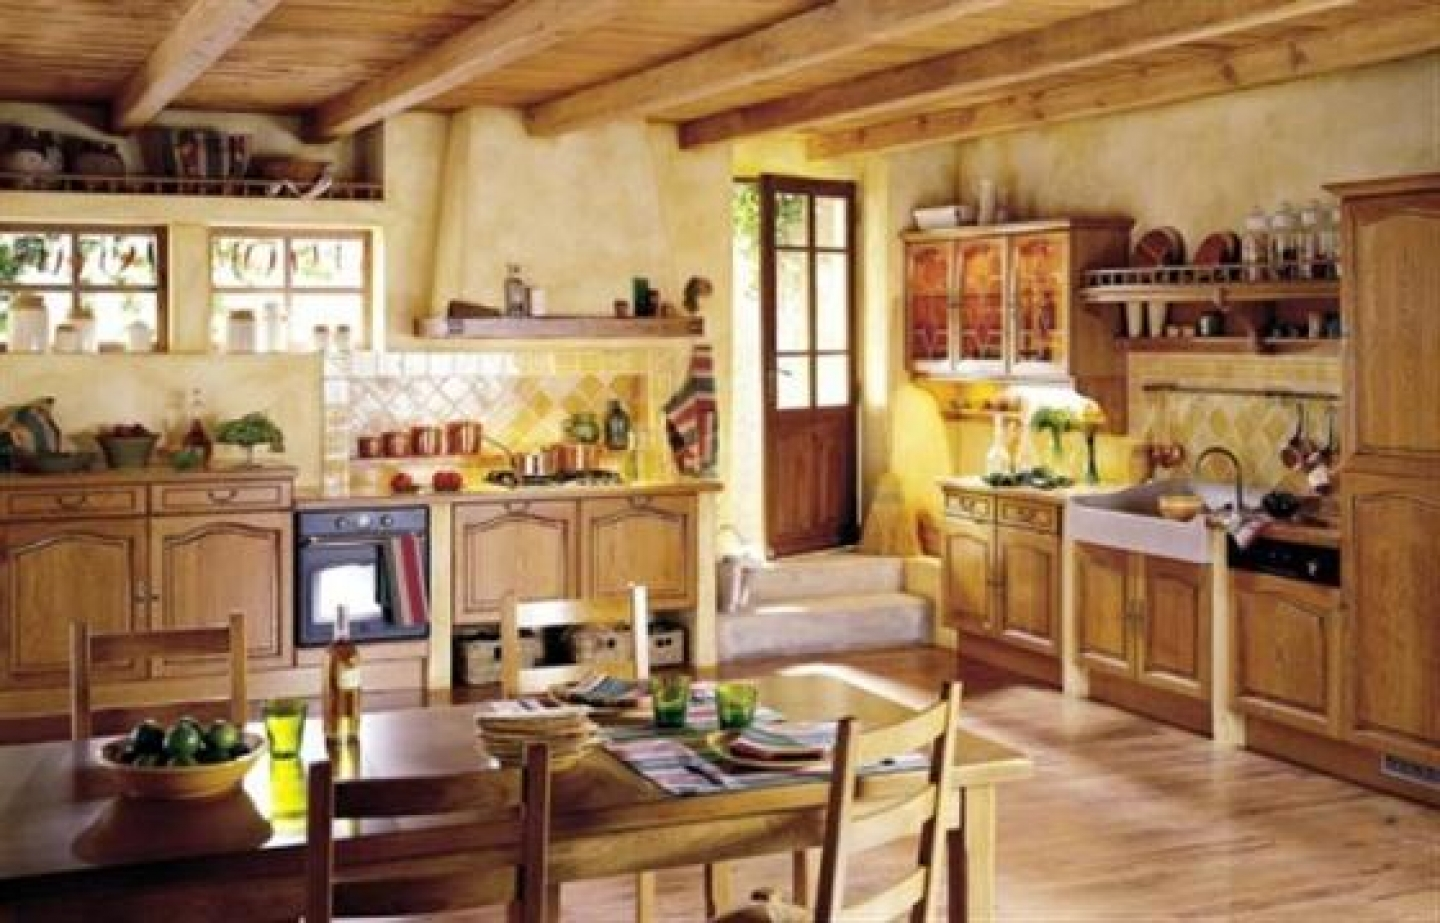 Gallery of Country Homes Interior Design - Fabulous Homes Interior ...